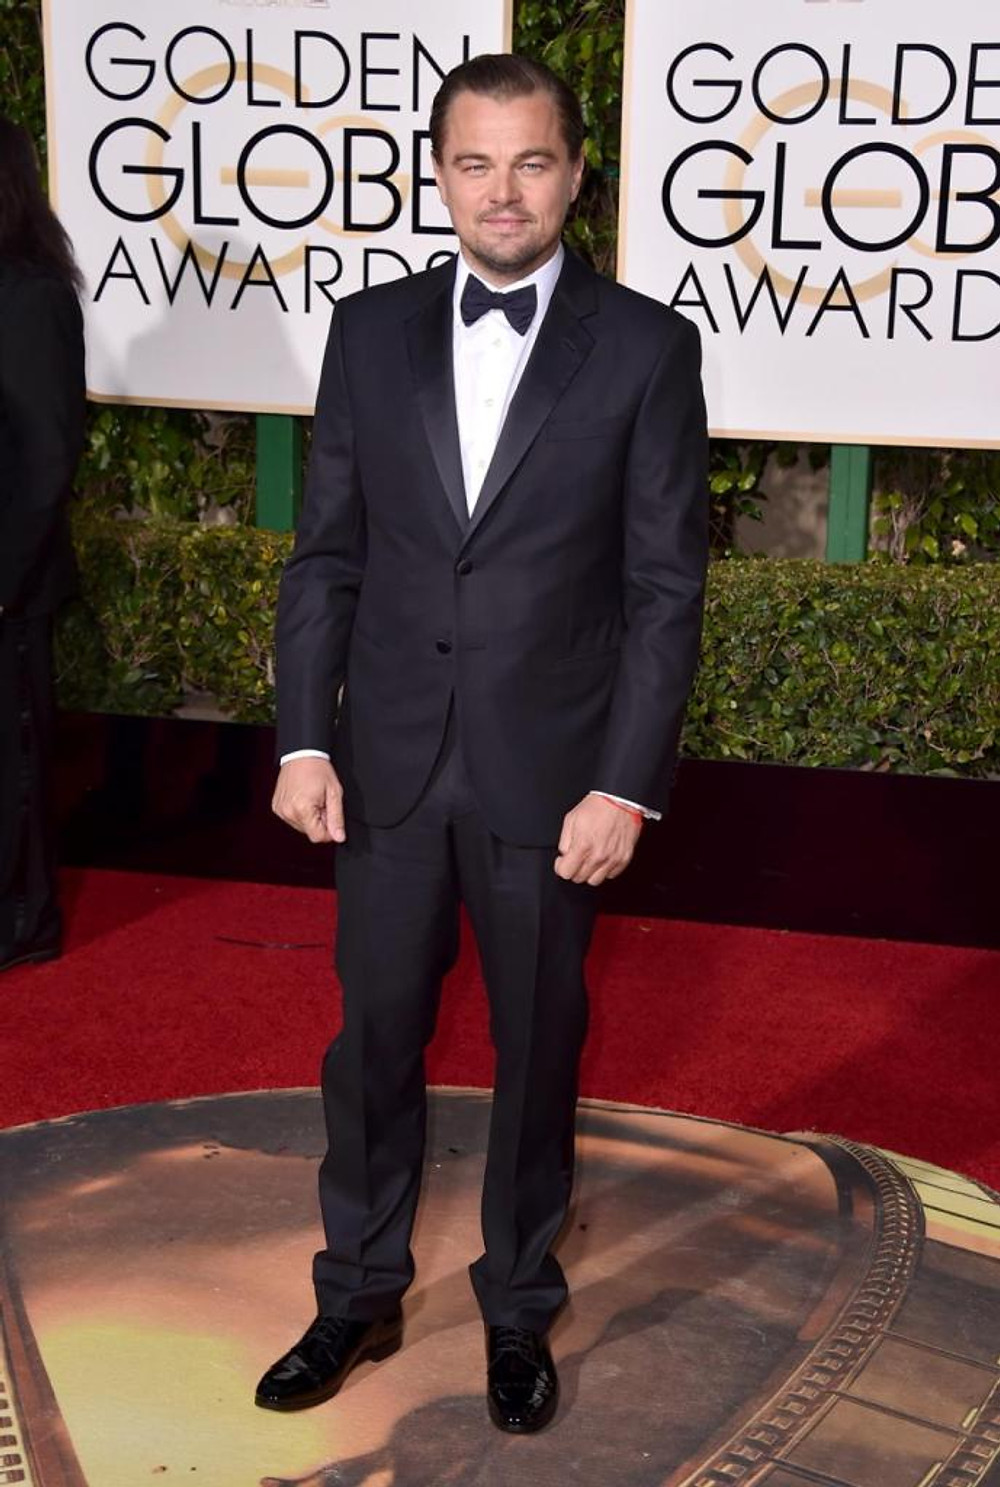 Leonardo DiCaprio arrives at the 73rd annual Golden Globe Awards on Sunday, Jan. 10, 2016, at the Beverly Hilton Hotel in Beverly Hills, Calif.